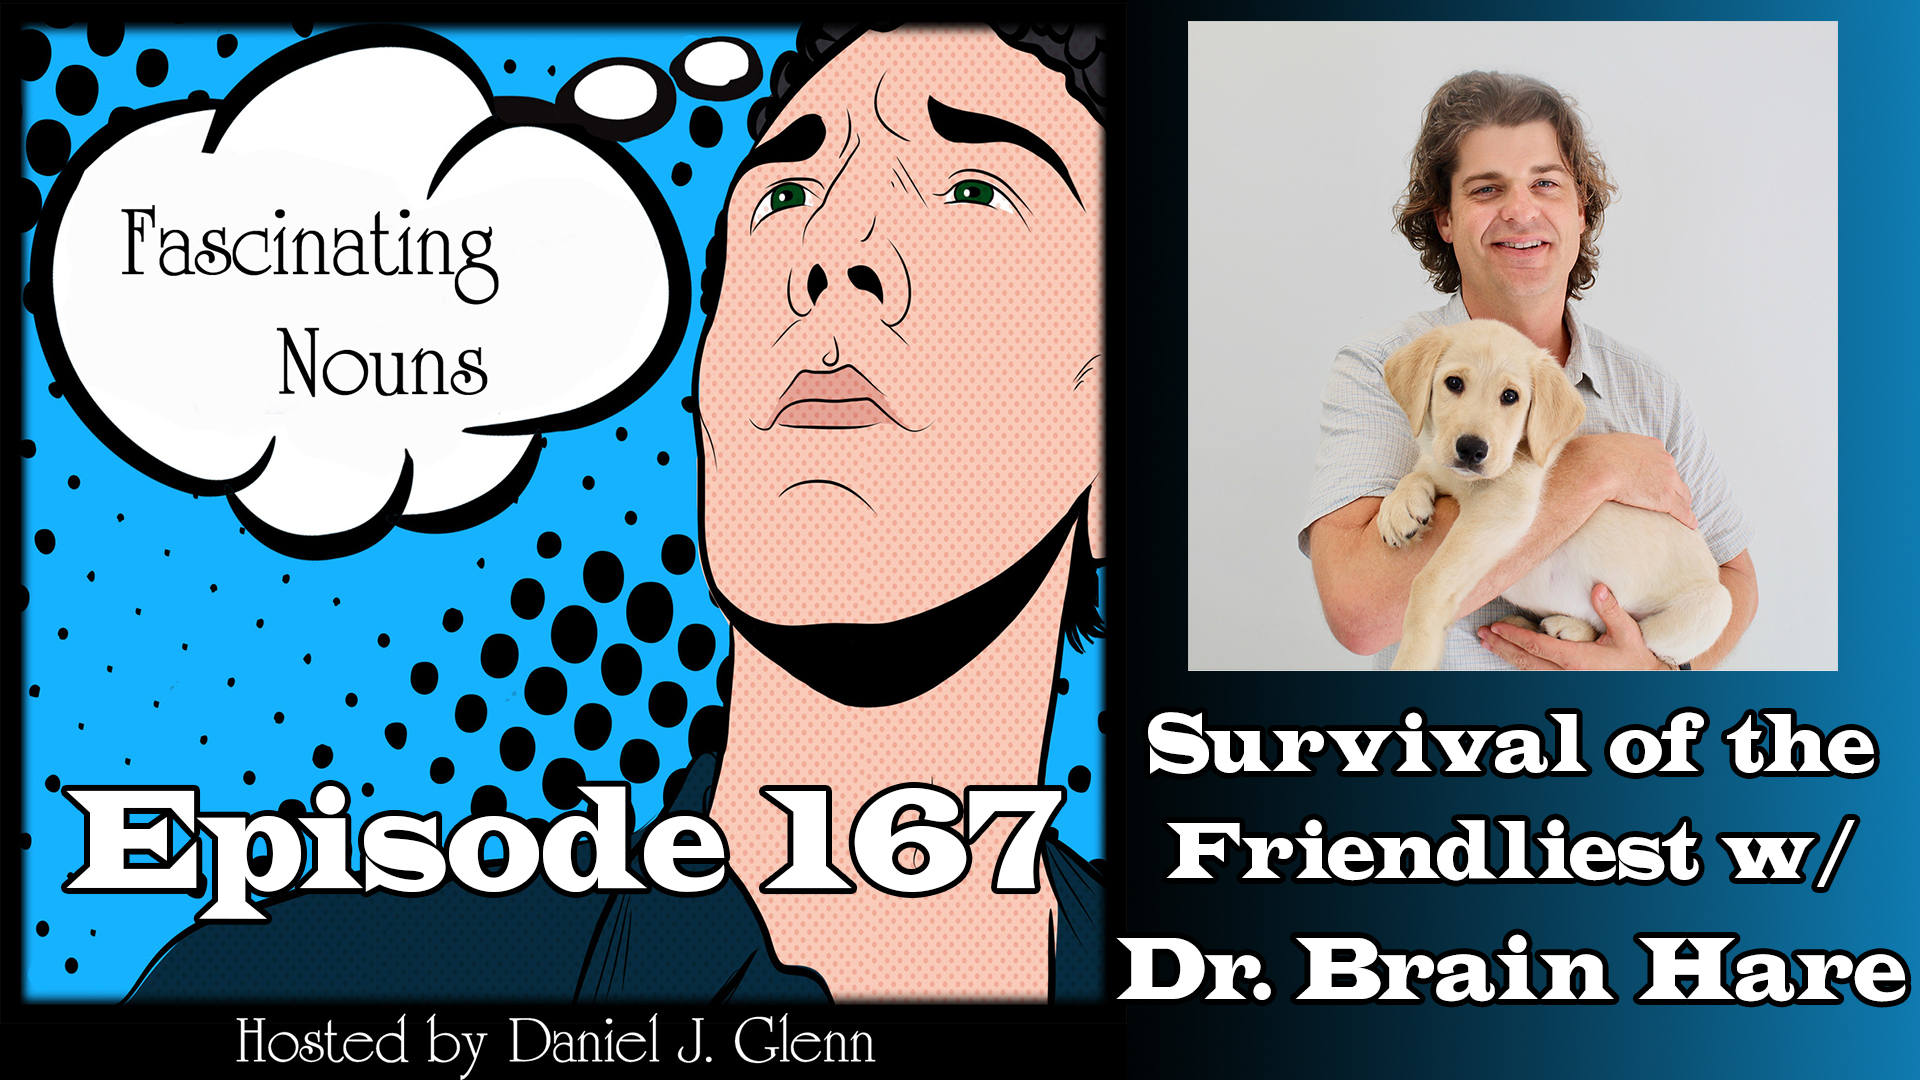 Ep. 167:  Survival of the Friendliest